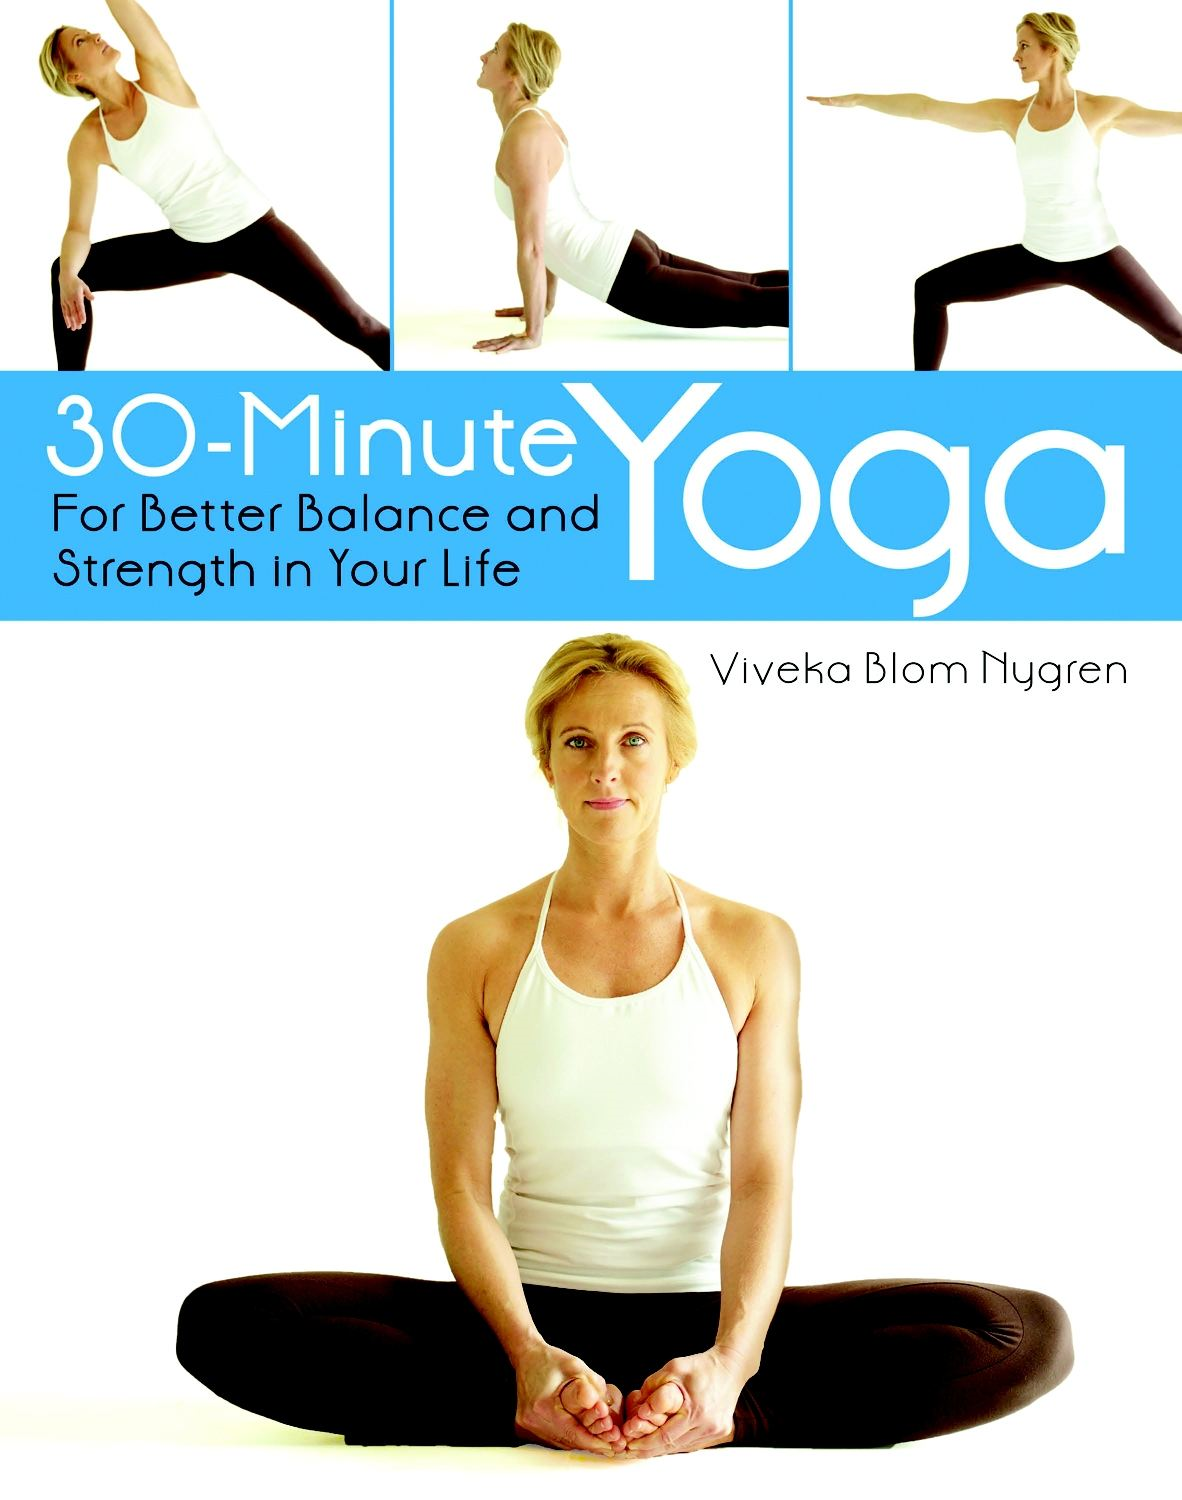 30-Minute Yoga: For Better Balance and Strength in Your Life By: Viveka Blom Nygren